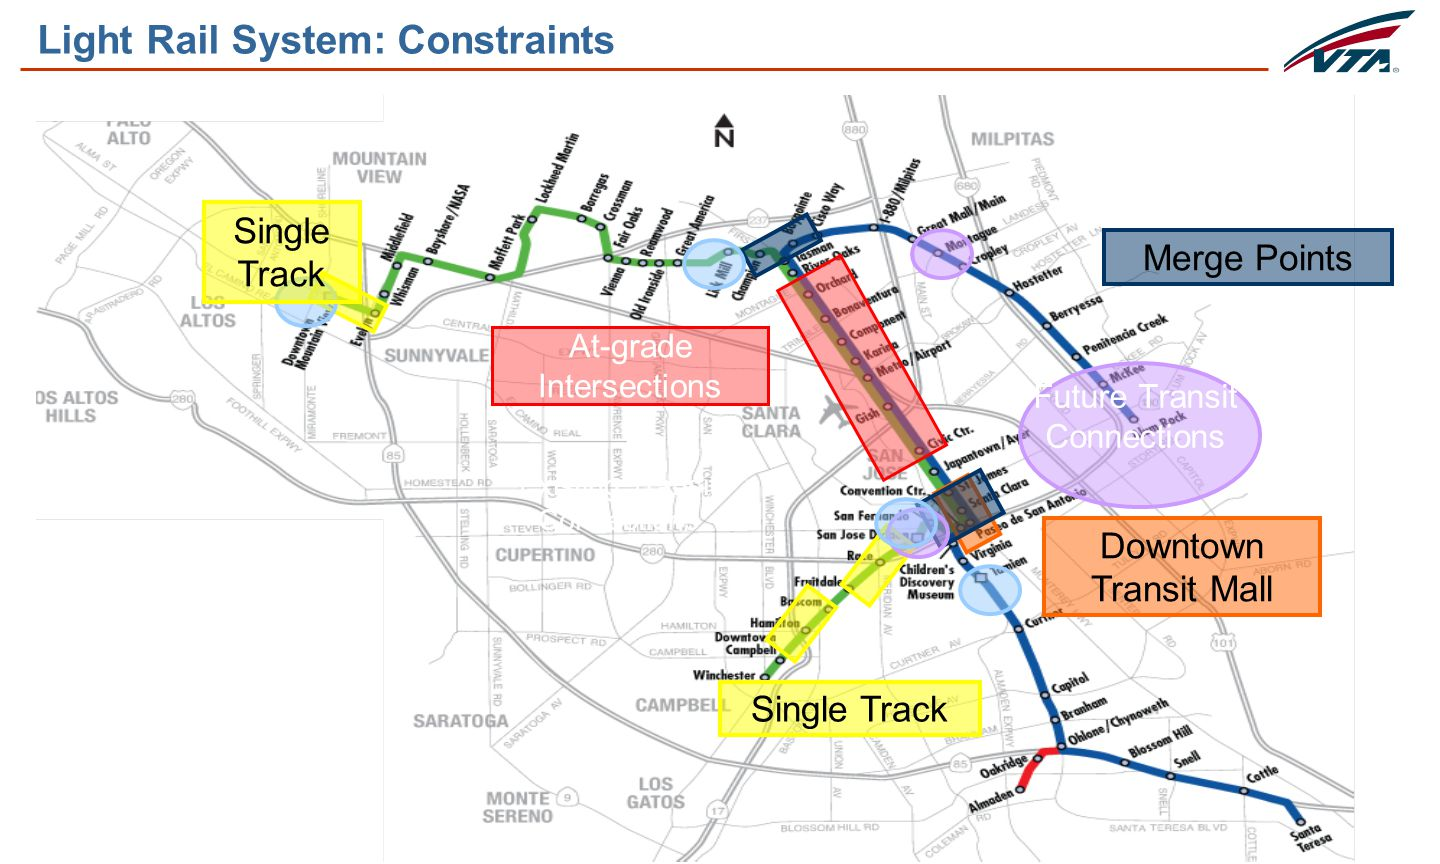 6 Downtown Transit Mall Single Track Merge Points Light Rail System: Constraints At-grade Intersections Future Transit Connections Existing Transit Connections Single Track